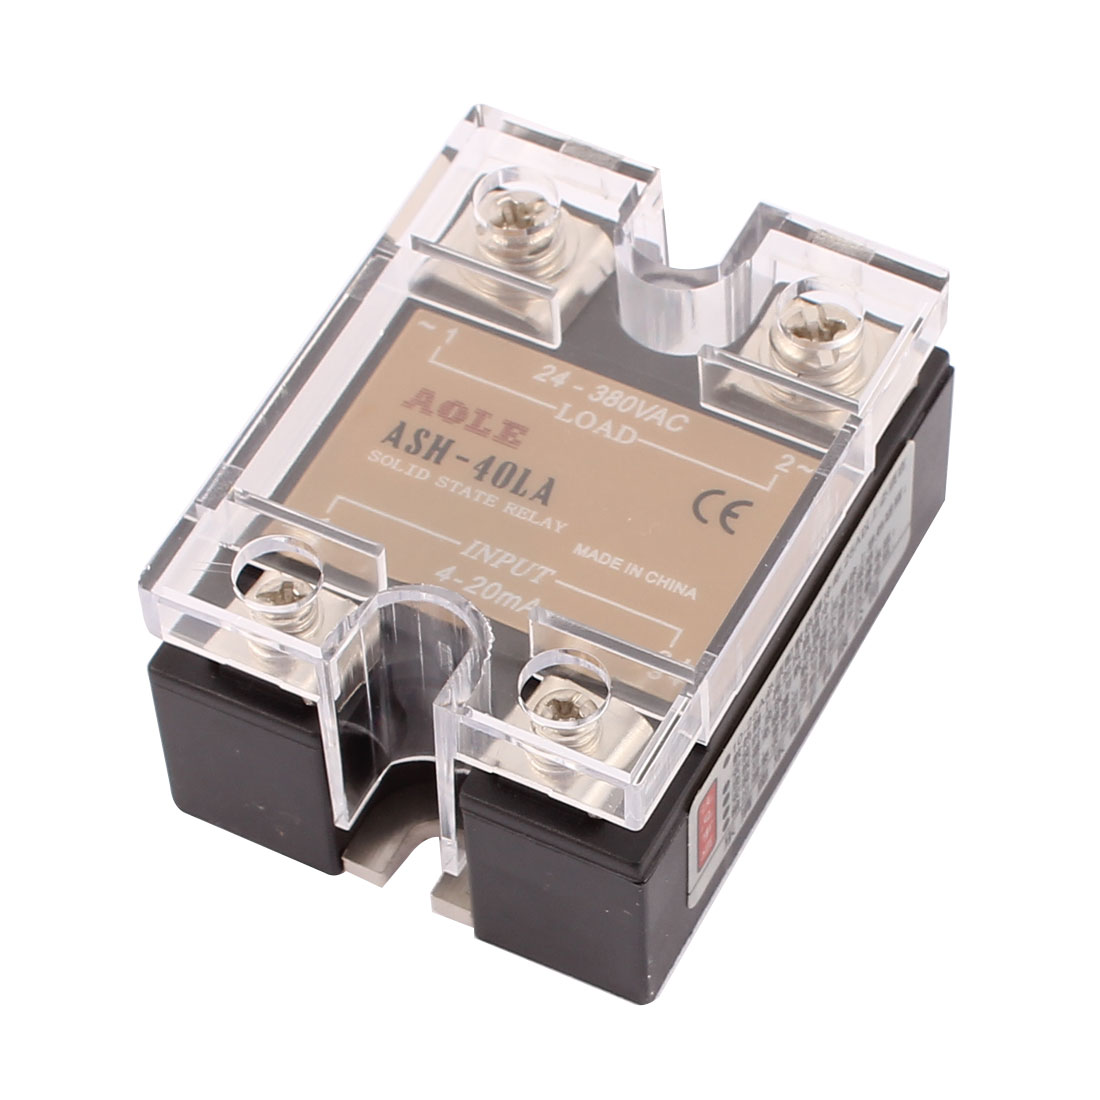 Ash-40La 4-20Ma To 380Vac 40A Single Phase Solid State Intelligent Relay